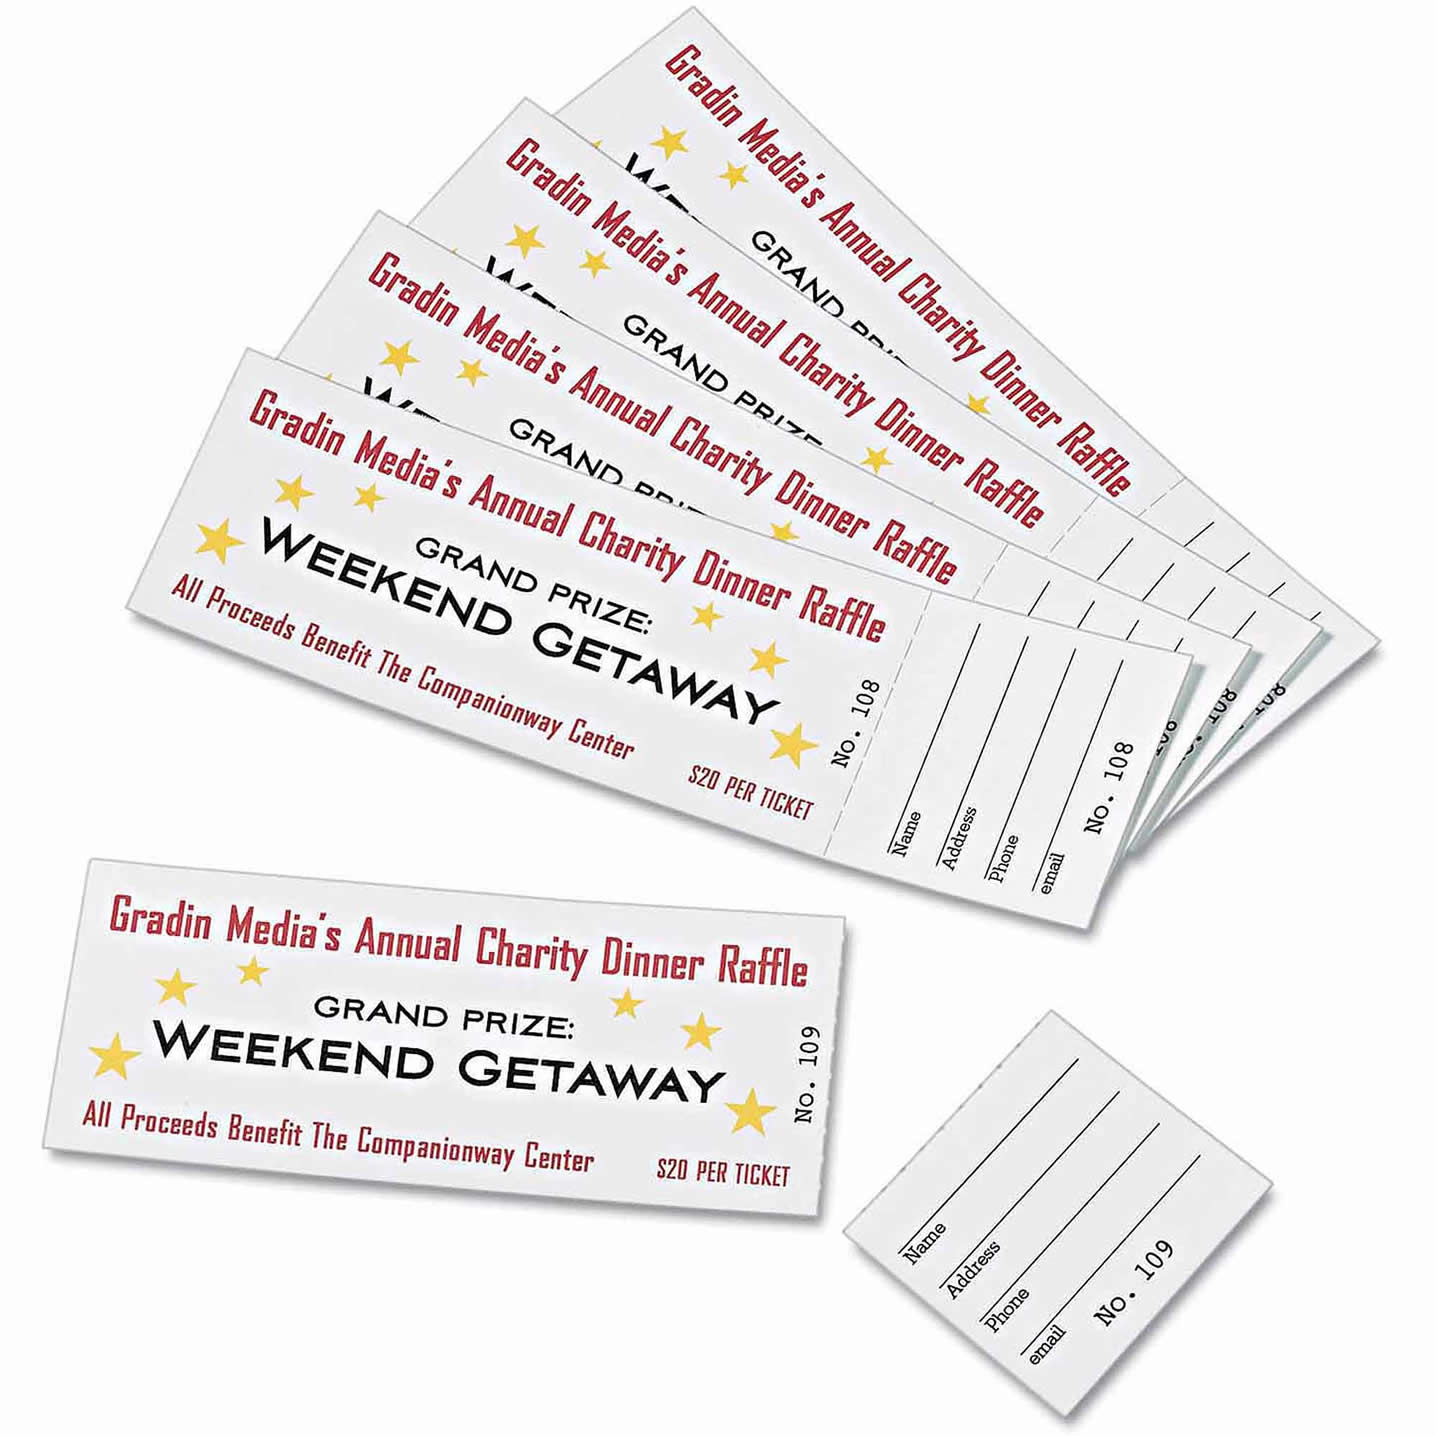 event tickets printing custom ticket online bestofprinting nyc. Black Bedroom Furniture Sets. Home Design Ideas